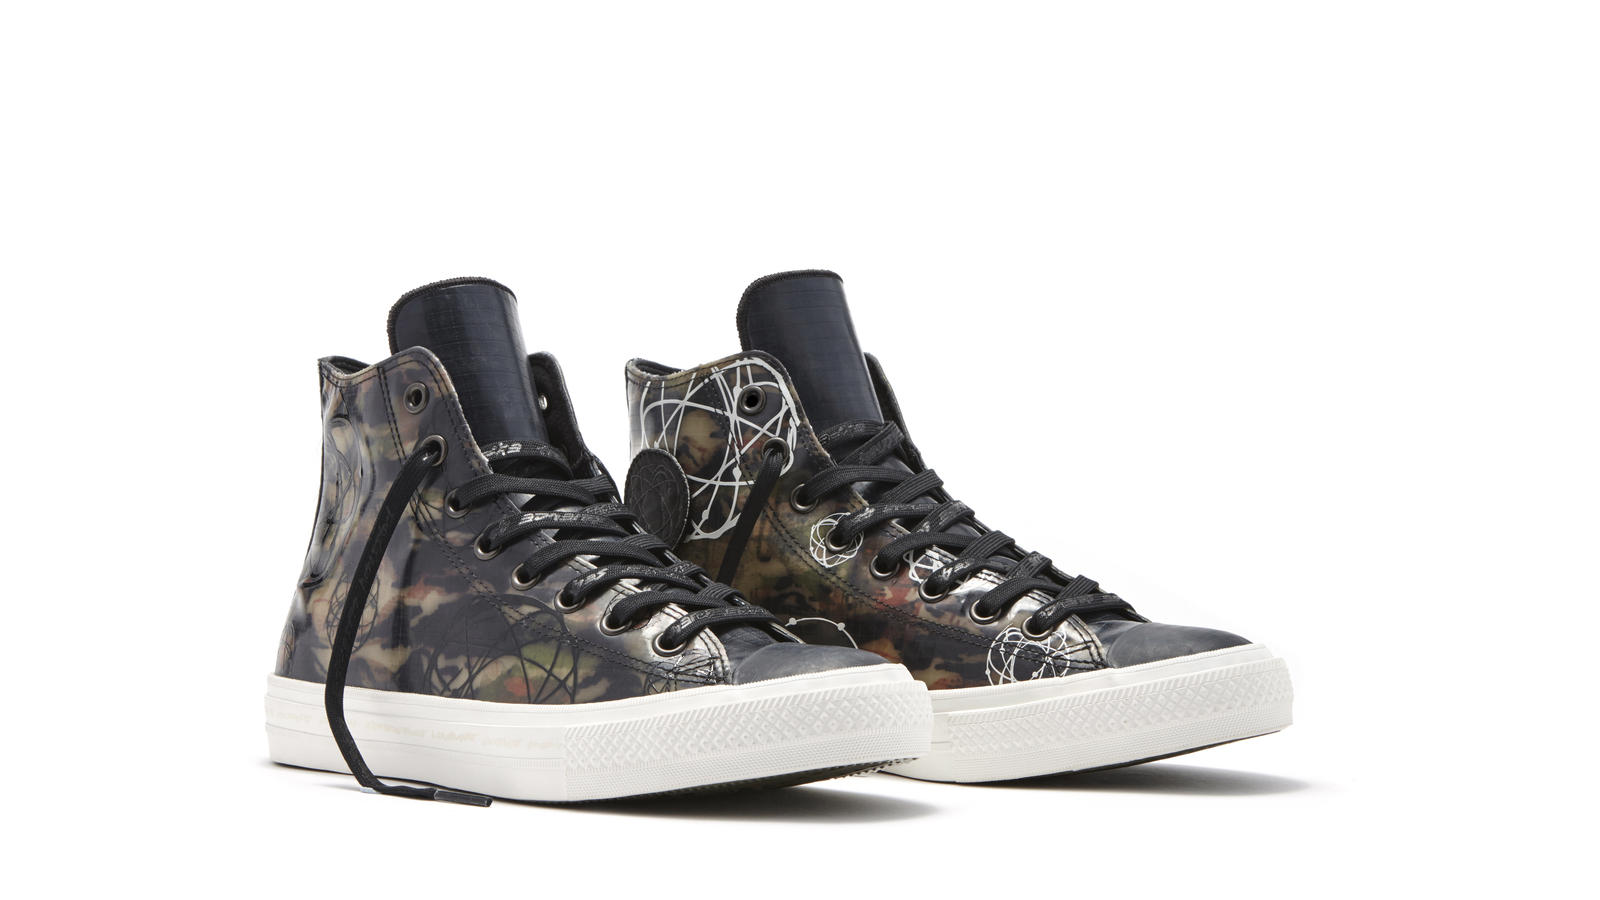 83148a0b428a CONVERSE UNVEILS FIRST EVER CHUCK TAYLOR ALL STAR II COLLABORATION ...